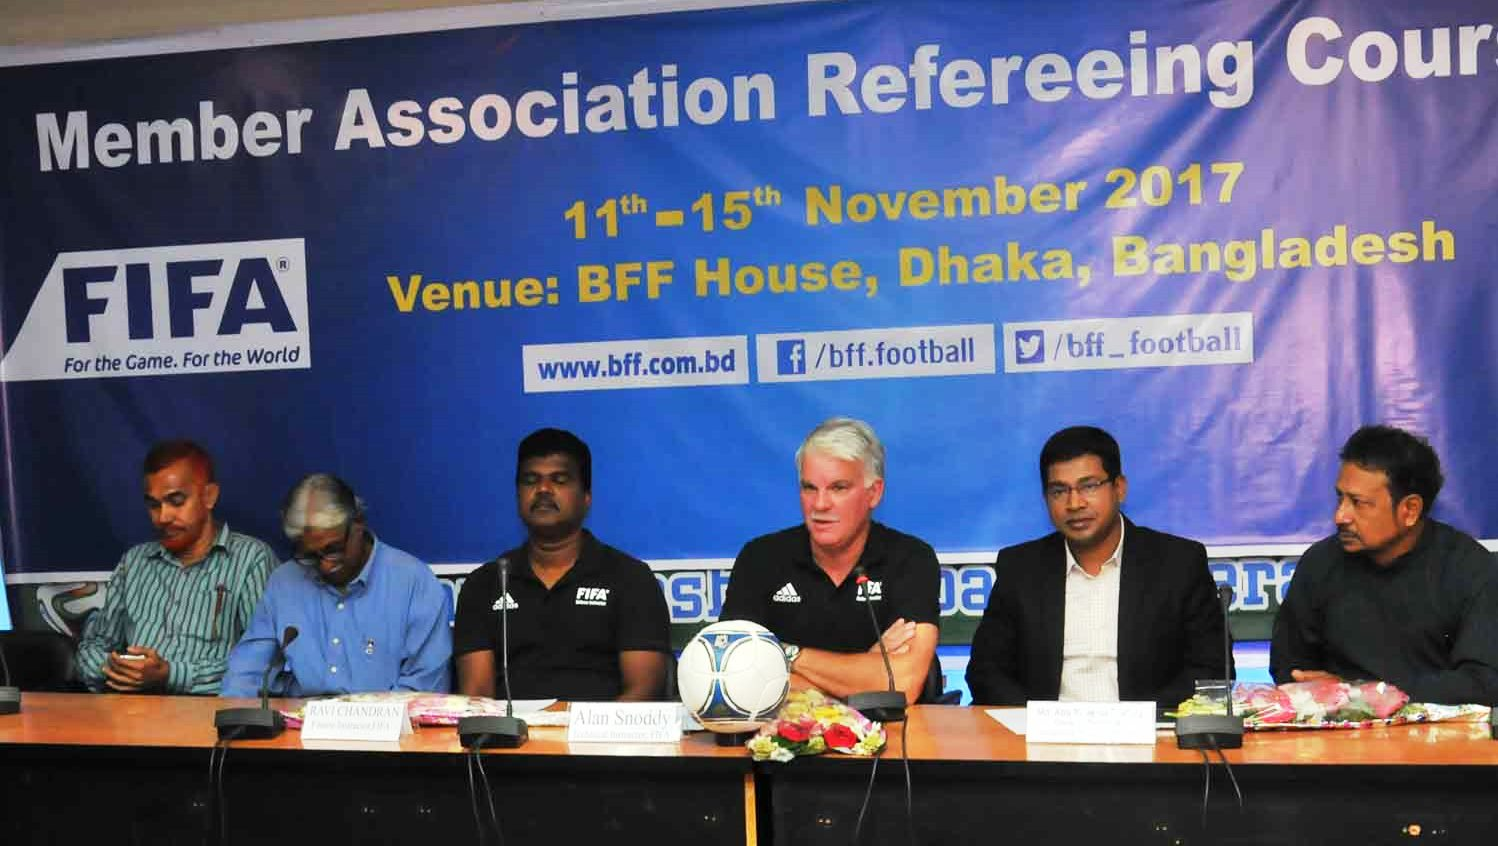 FIFA MA Refereeing Course launched by BFF